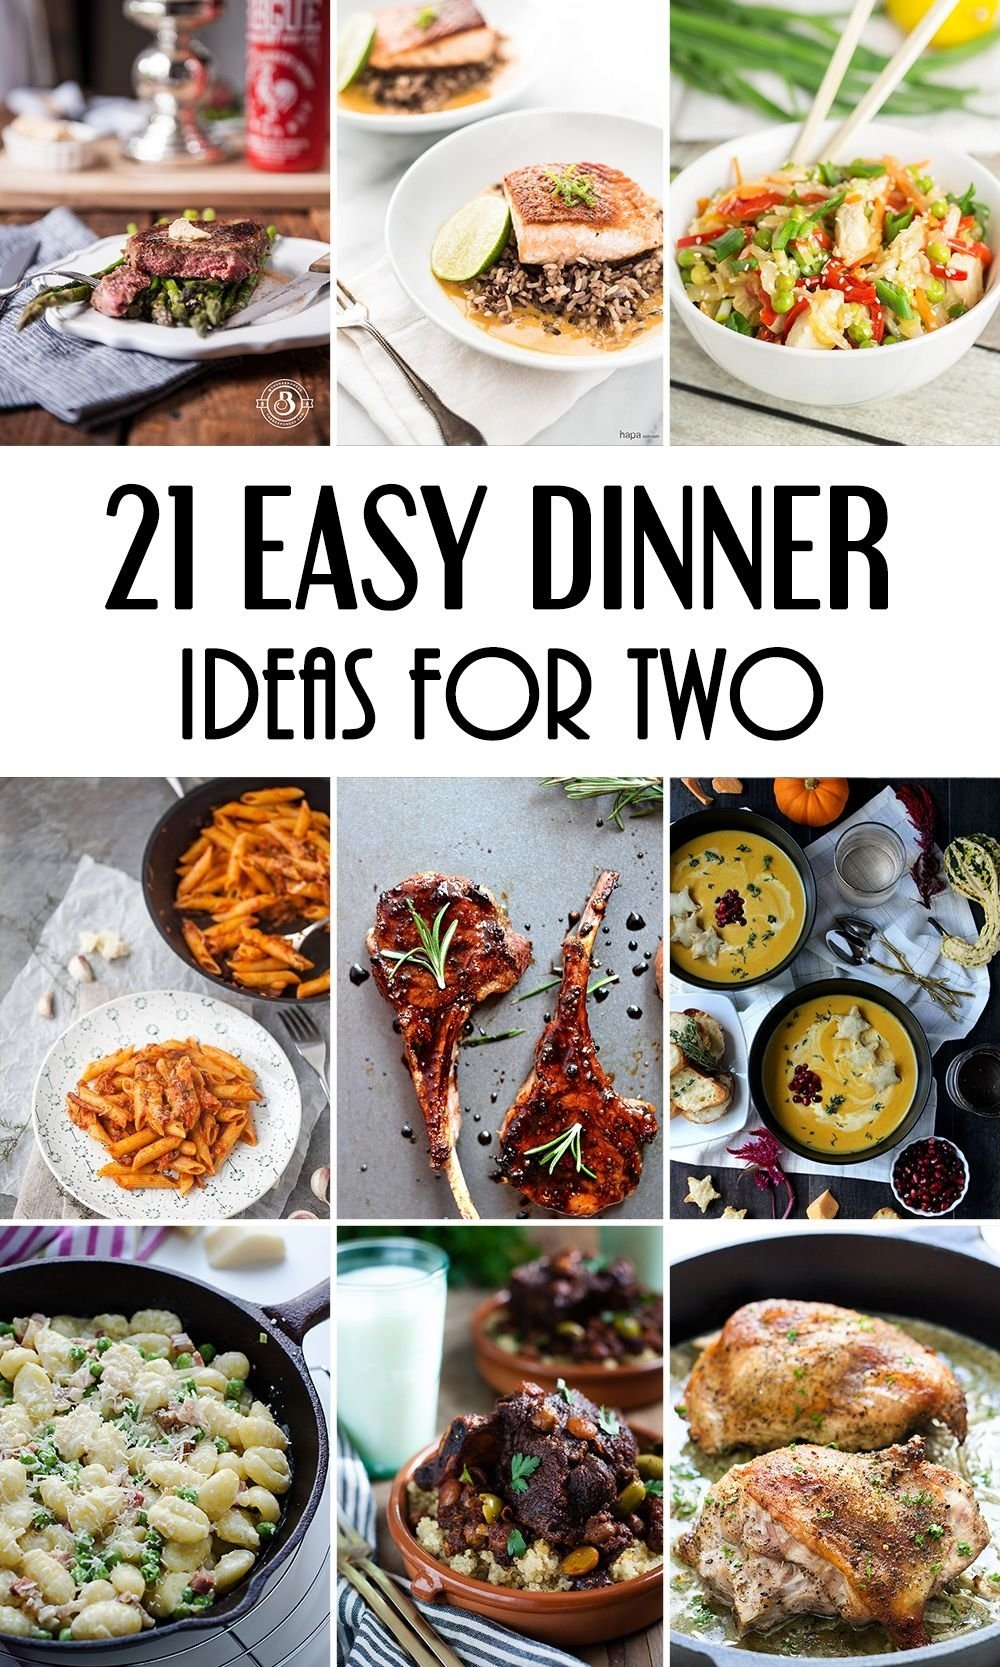 10 Fashionable Ideas For Dinner For Two 21 easy dinner ideas for two that will impress your loved one 20